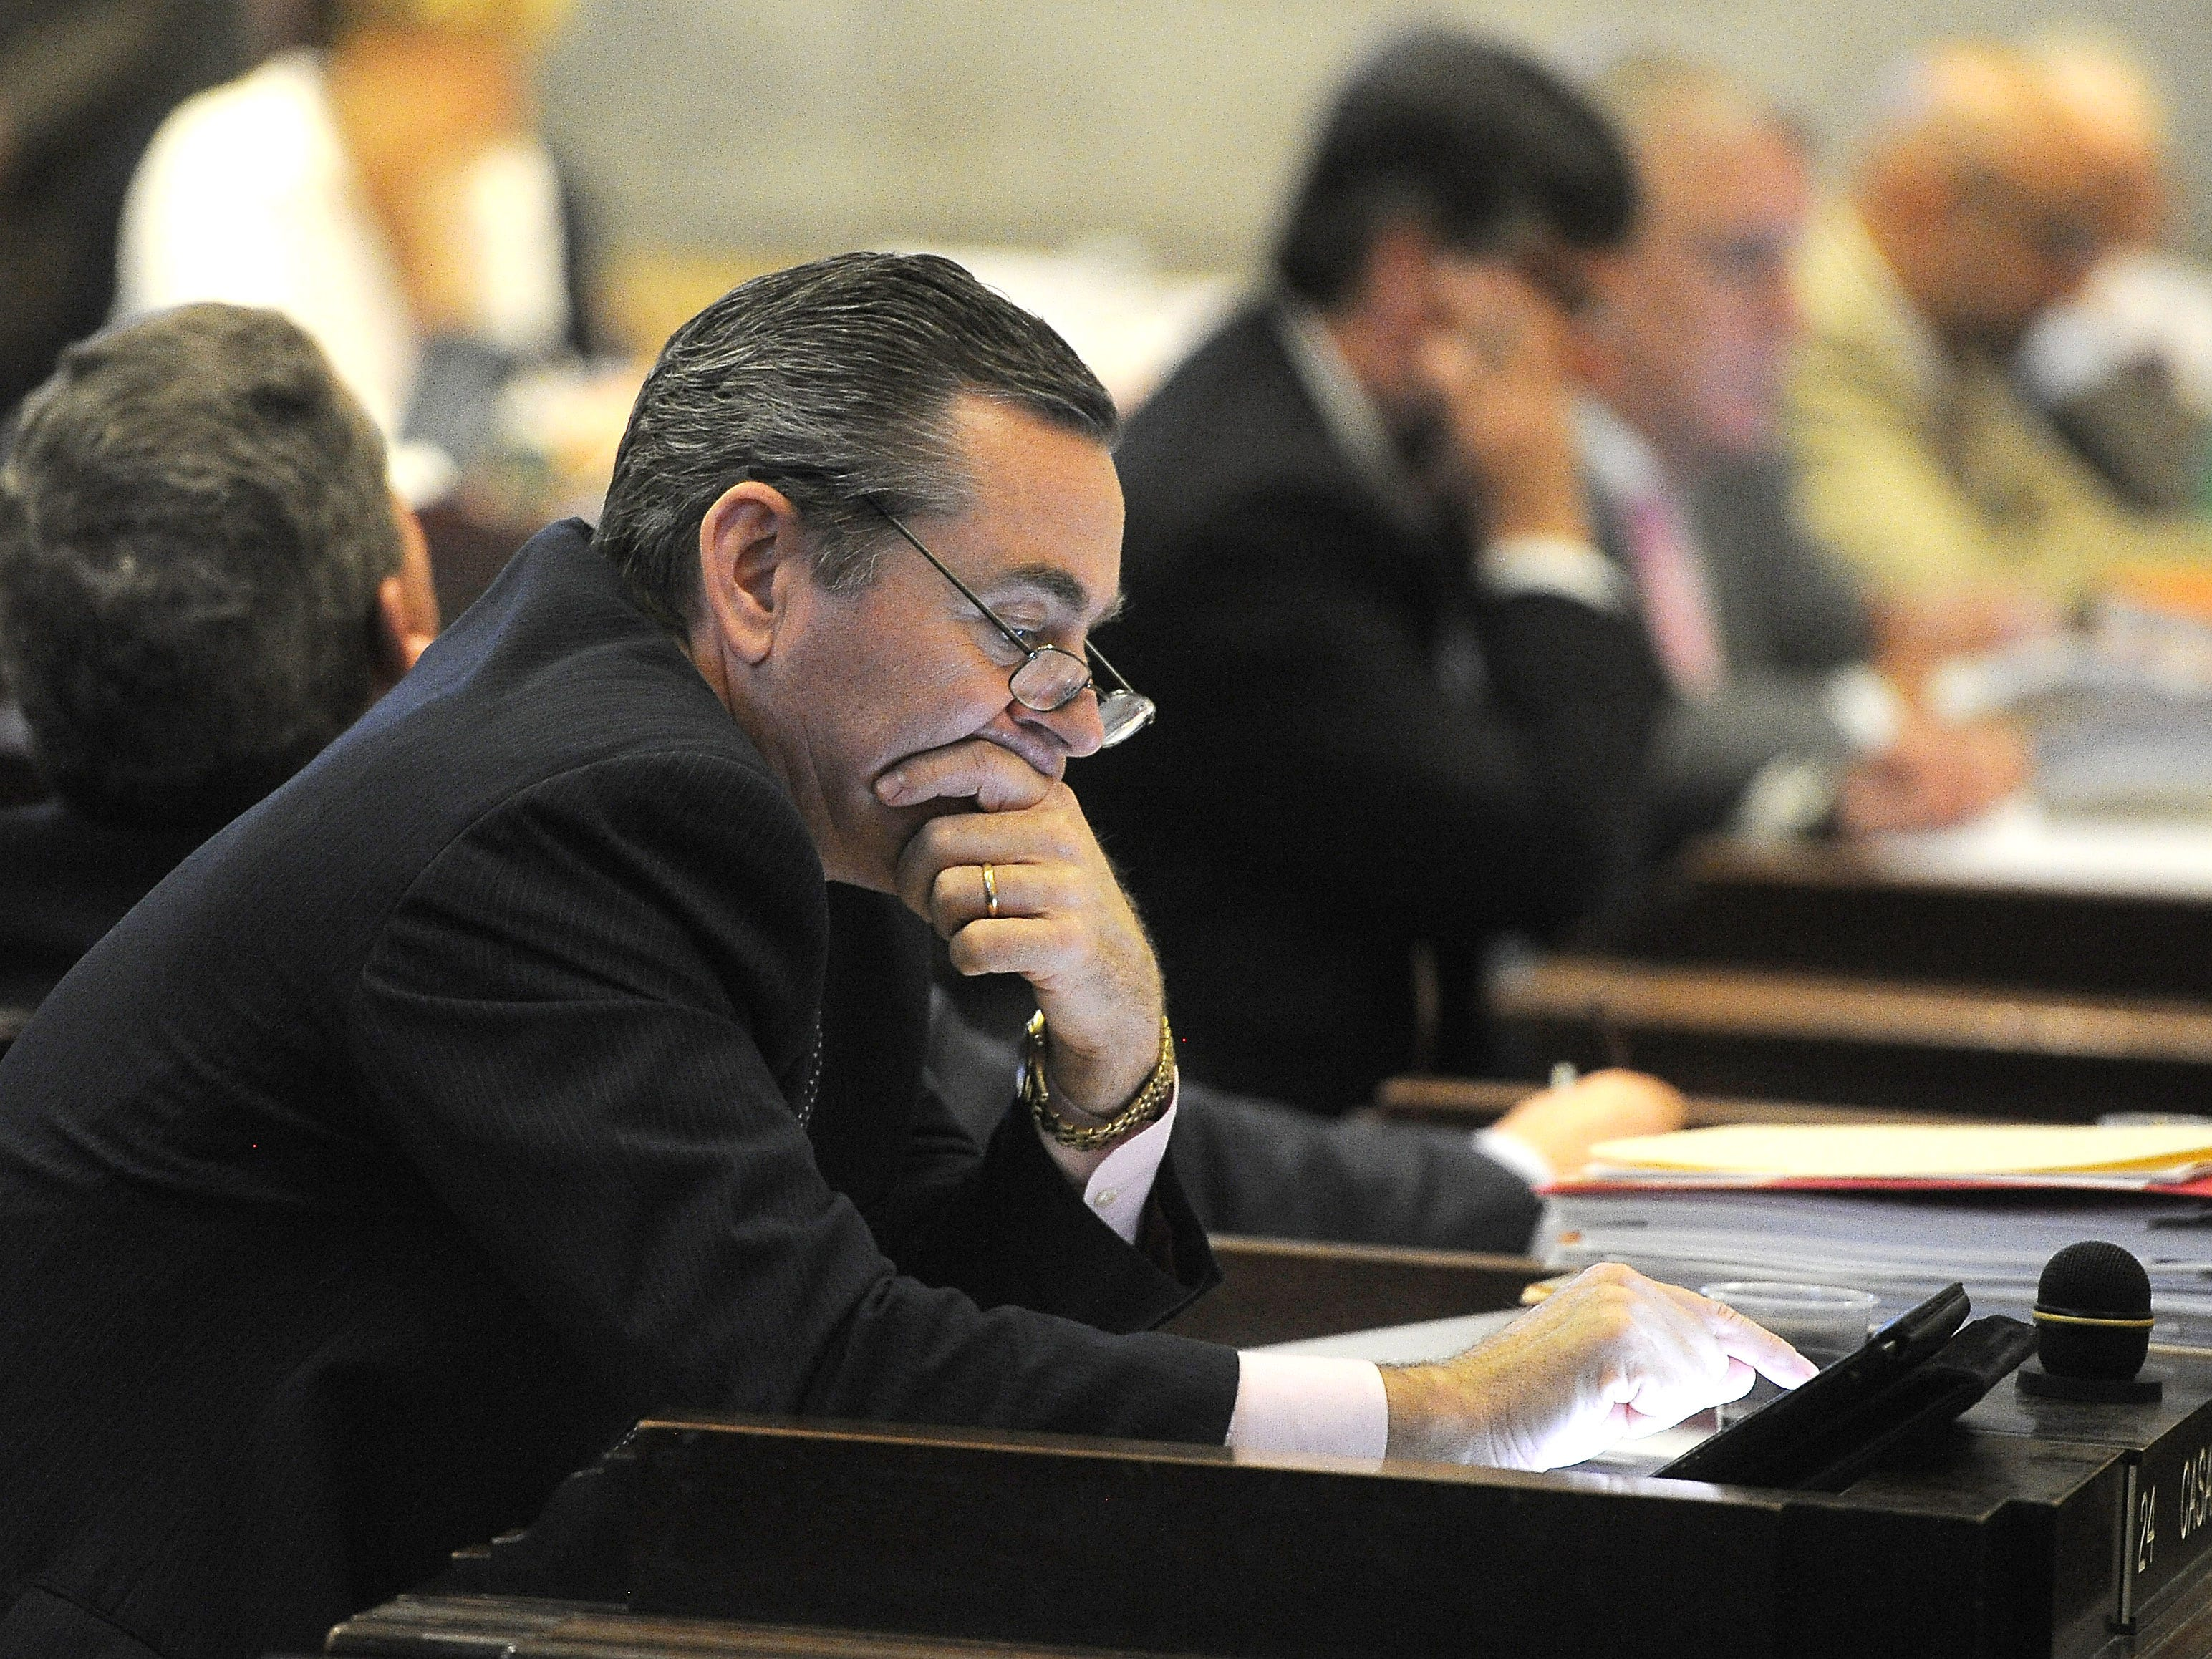 Rep. Glen Casada checks his tablet as Tennessee lawmakers are poised to vote on a $32 billion spending plan for the budget year April 10, 2014.